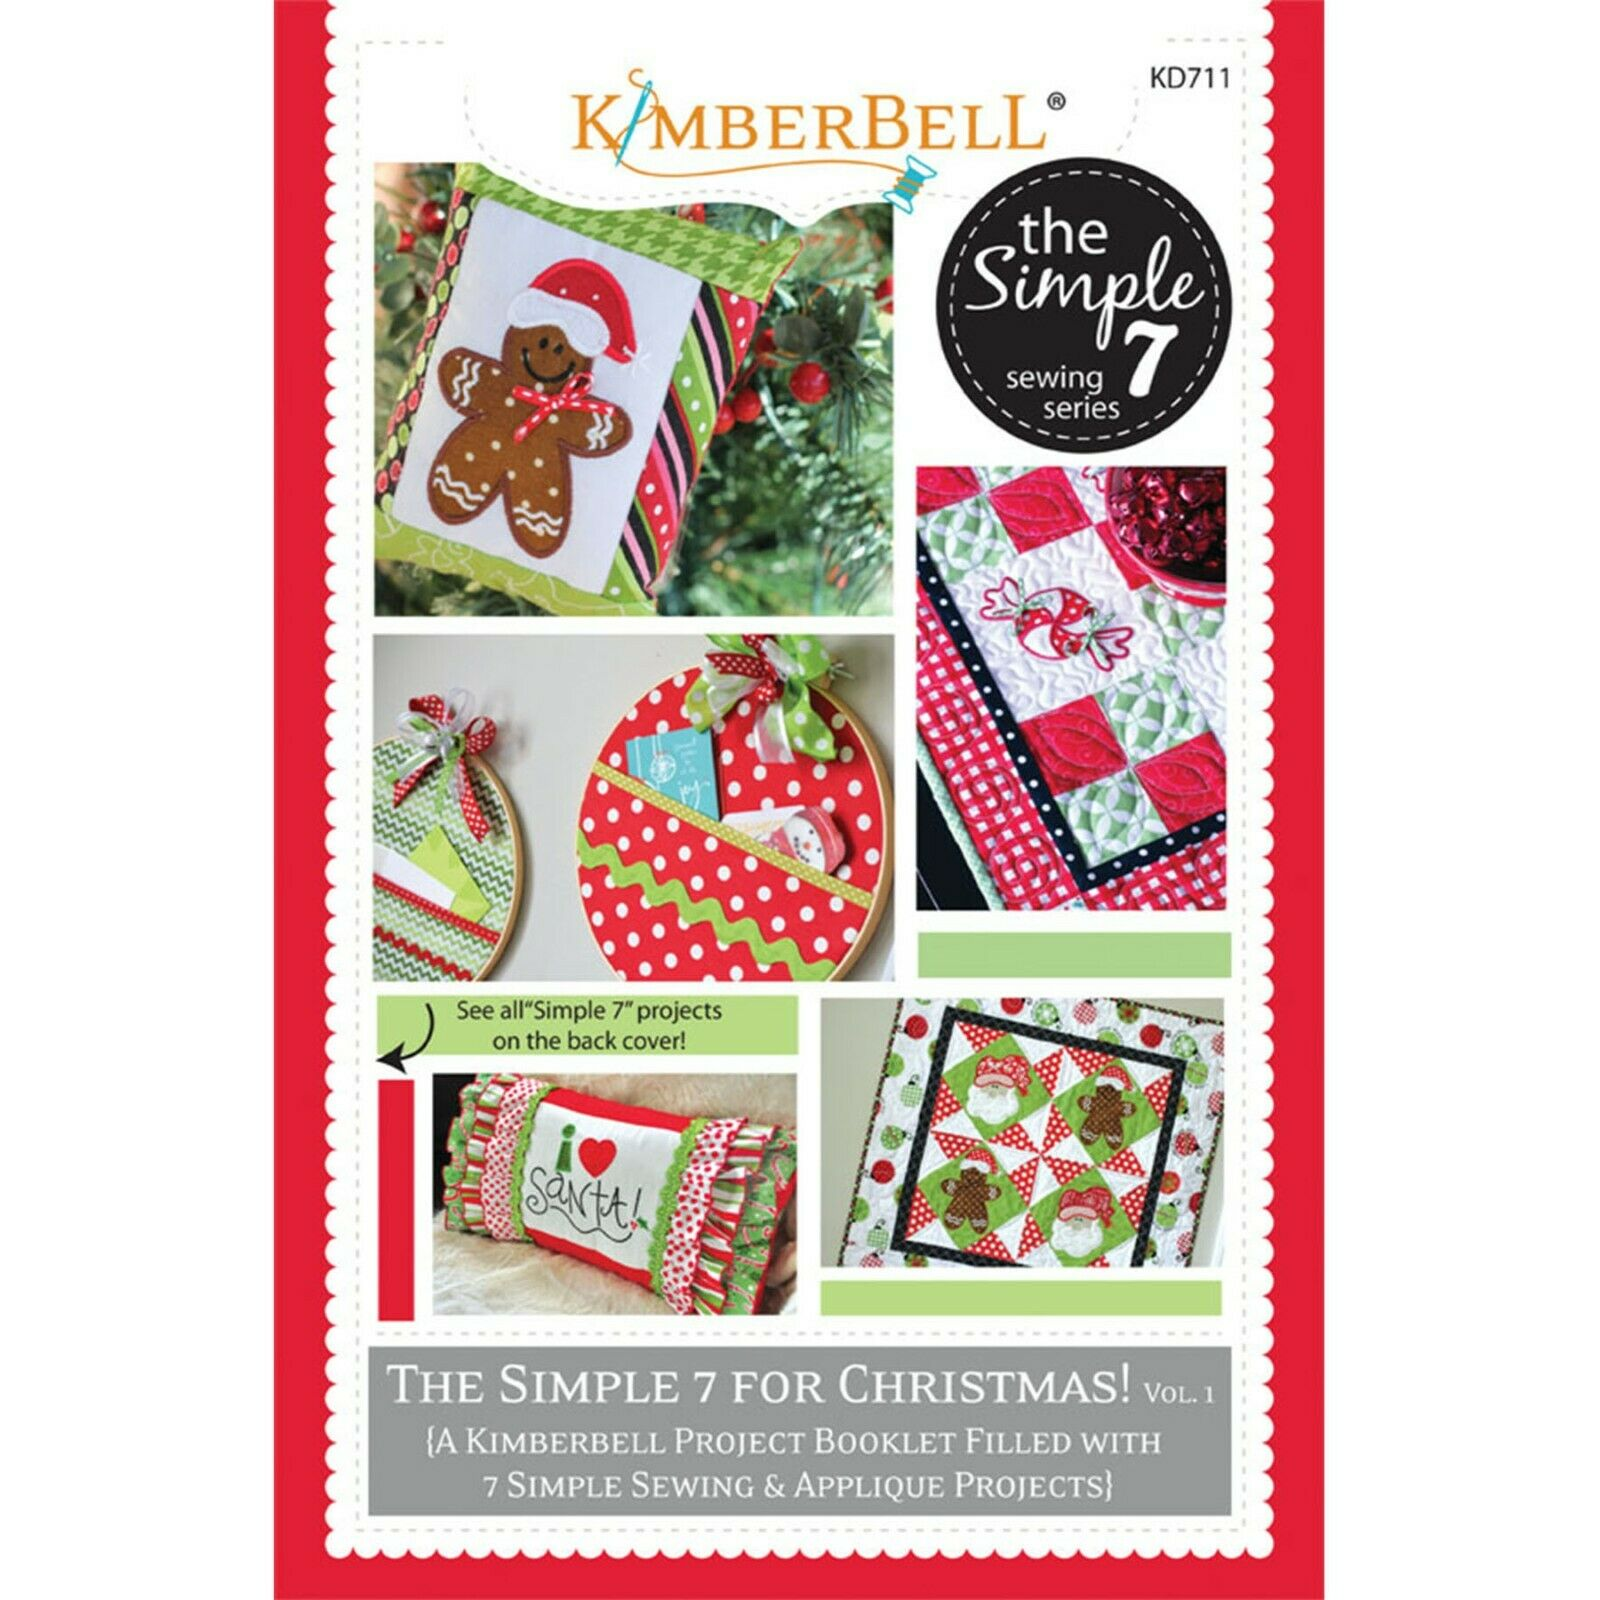 CHRISTMAS SEWING PROJECTS SIMPLE 7 by Kimberbell